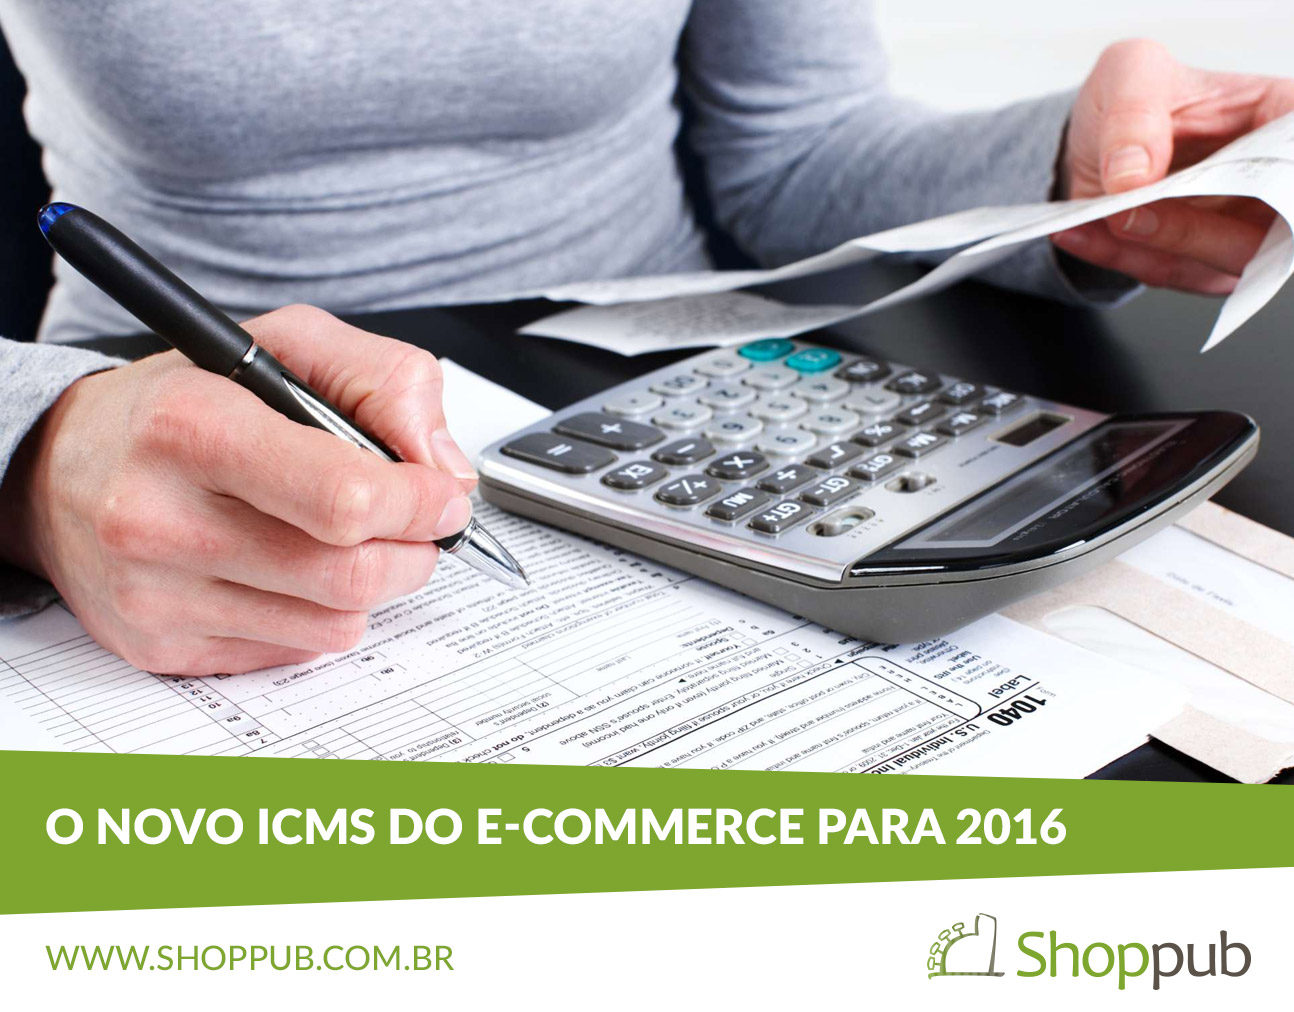 O novo ICMS do e-commerce para 2016